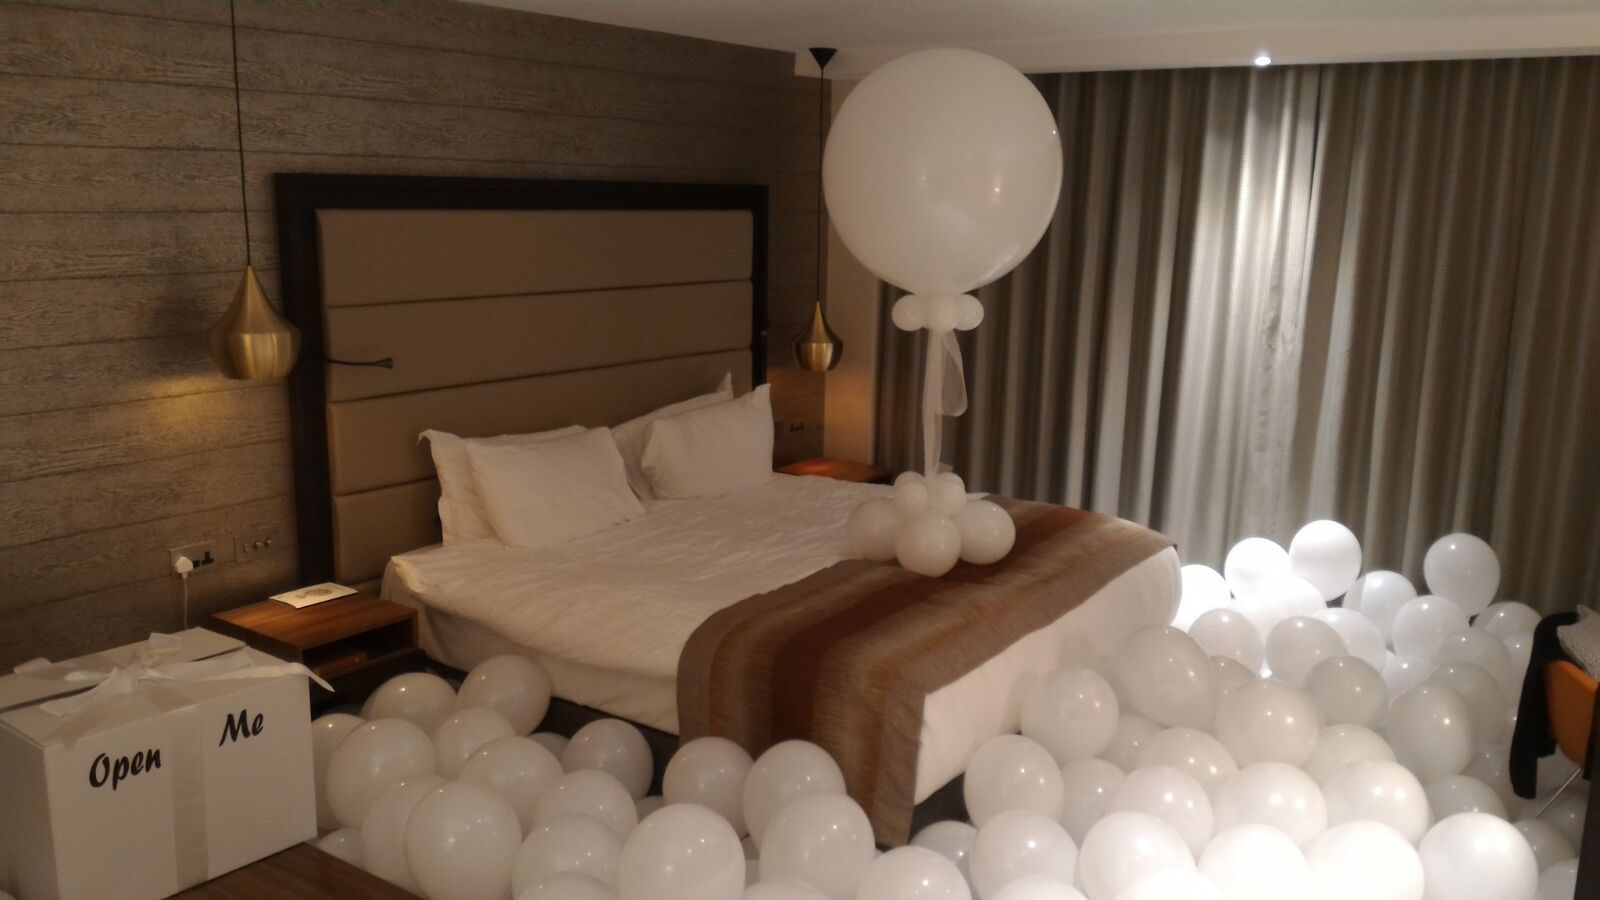 Hotel Room full Of Balloons for proposal